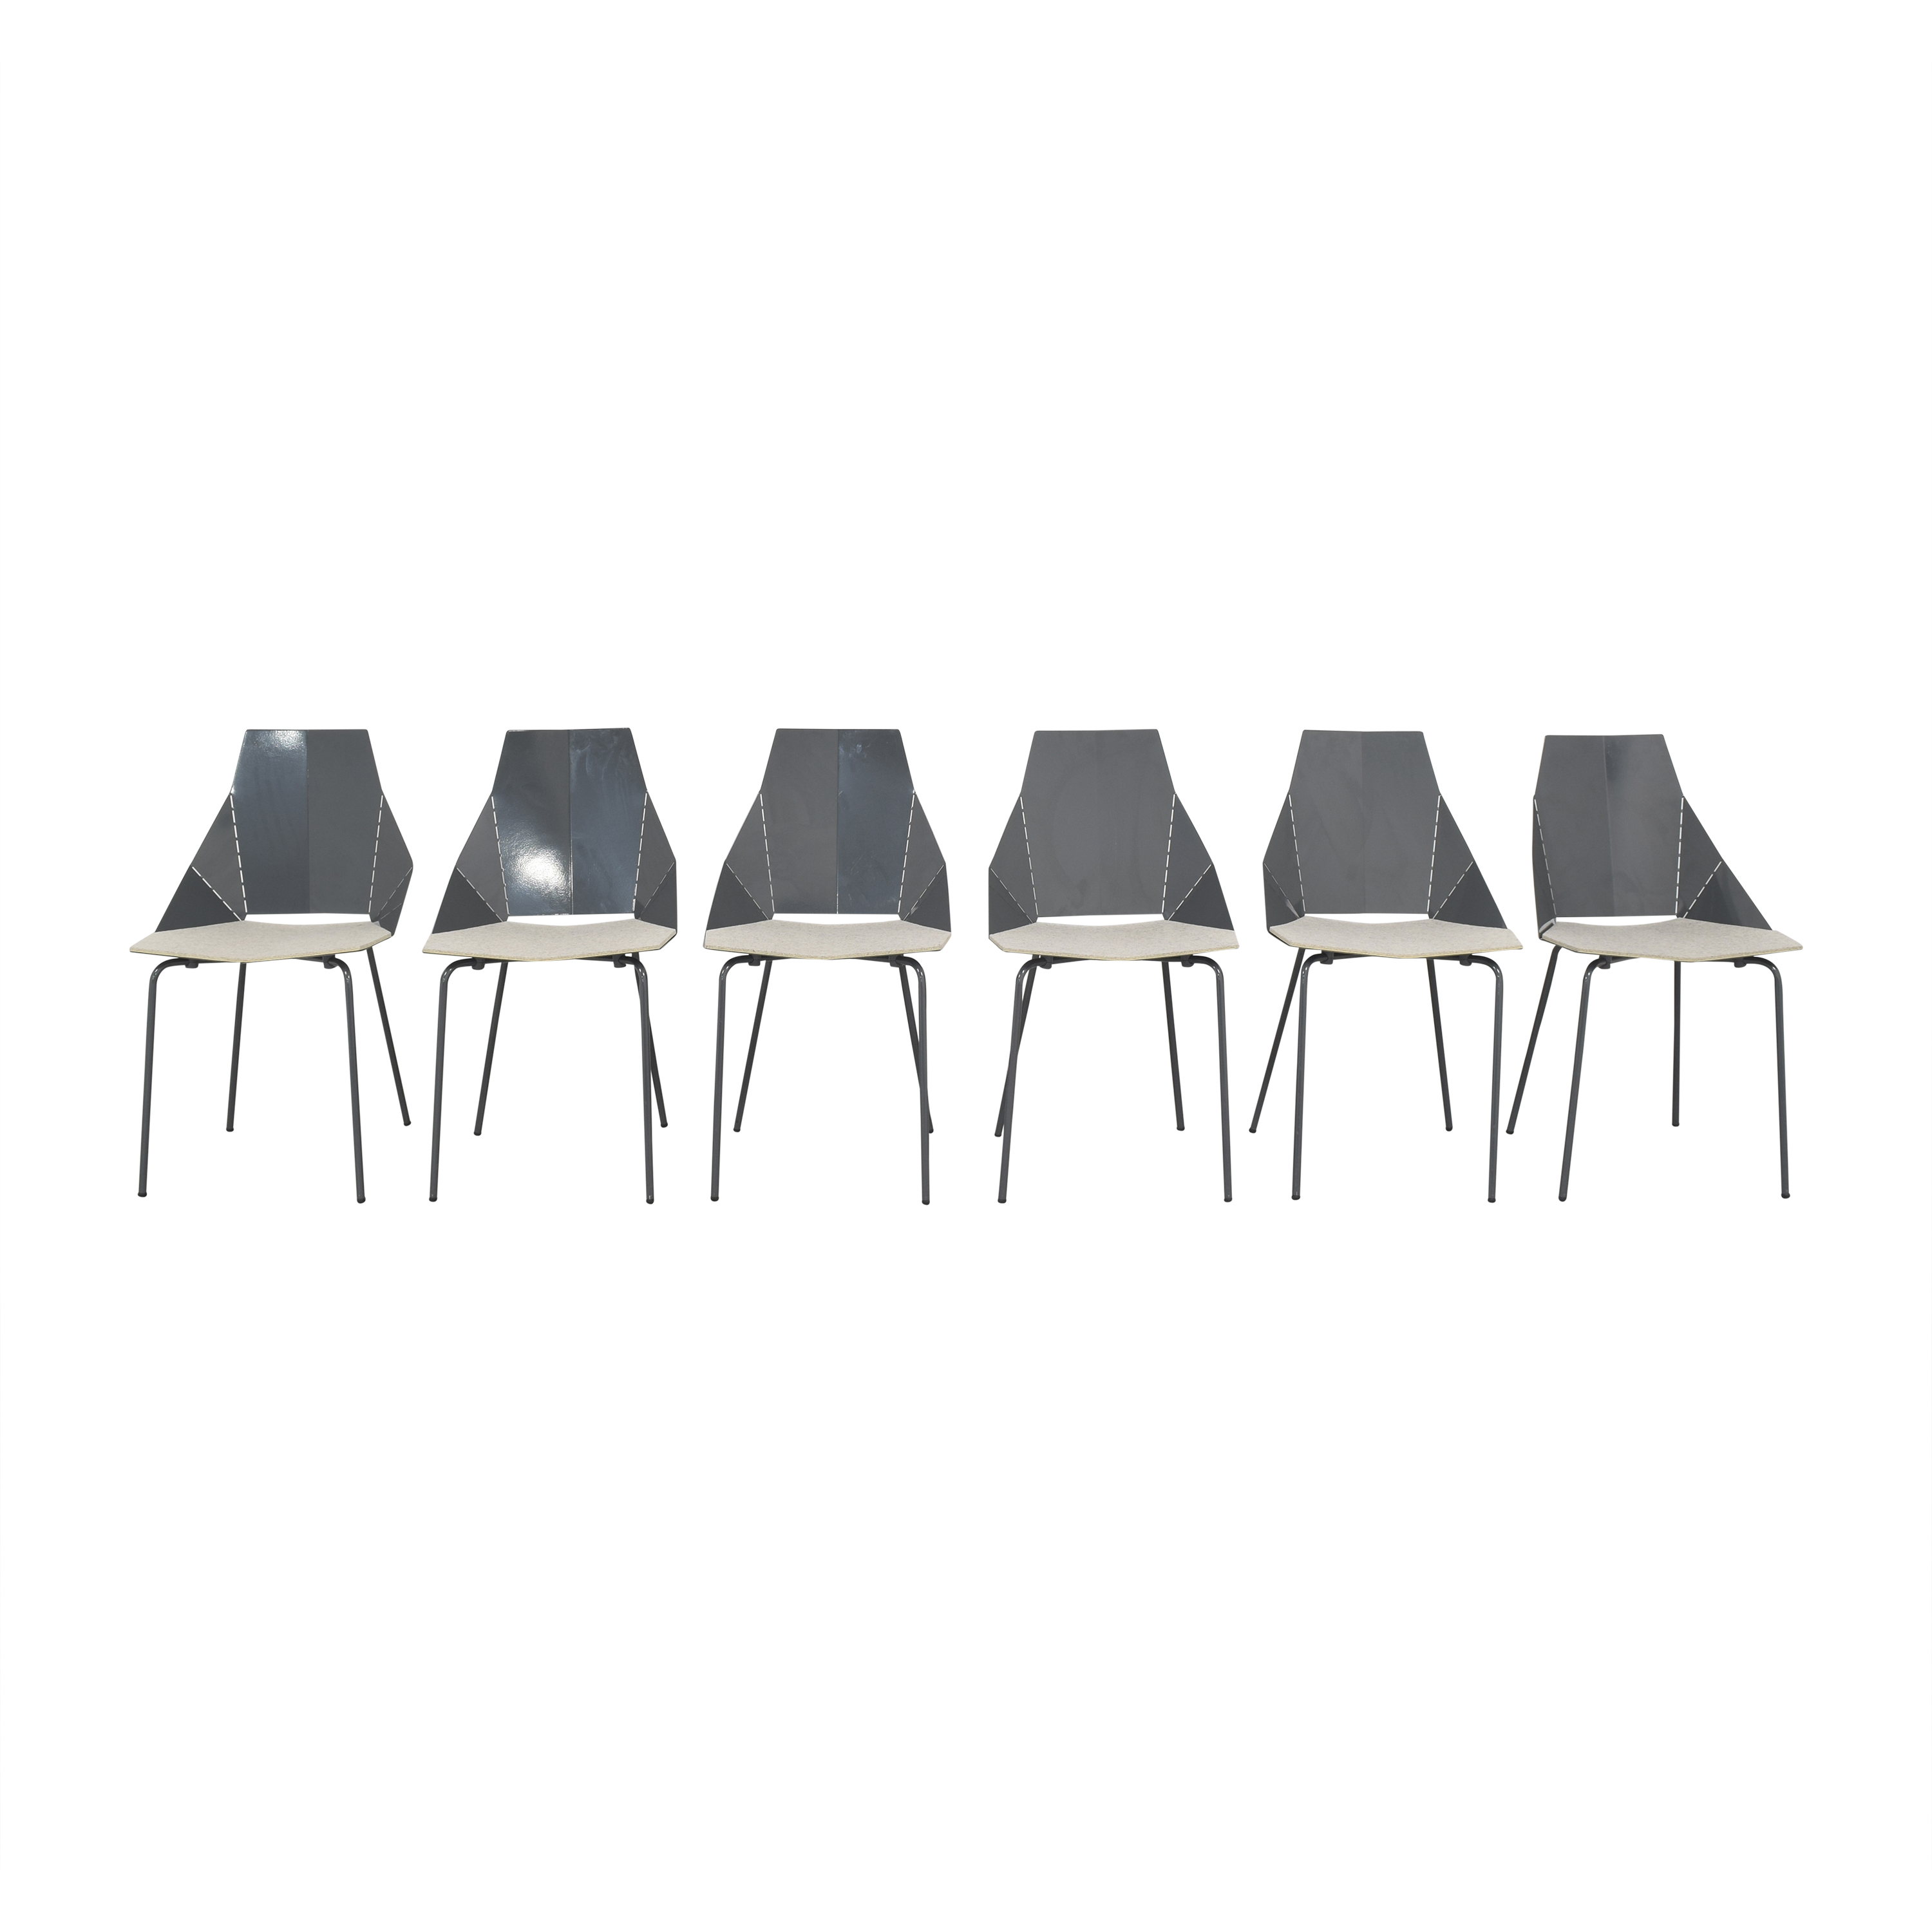 Blu Dot Real Good Chairs with Chair Pads sale